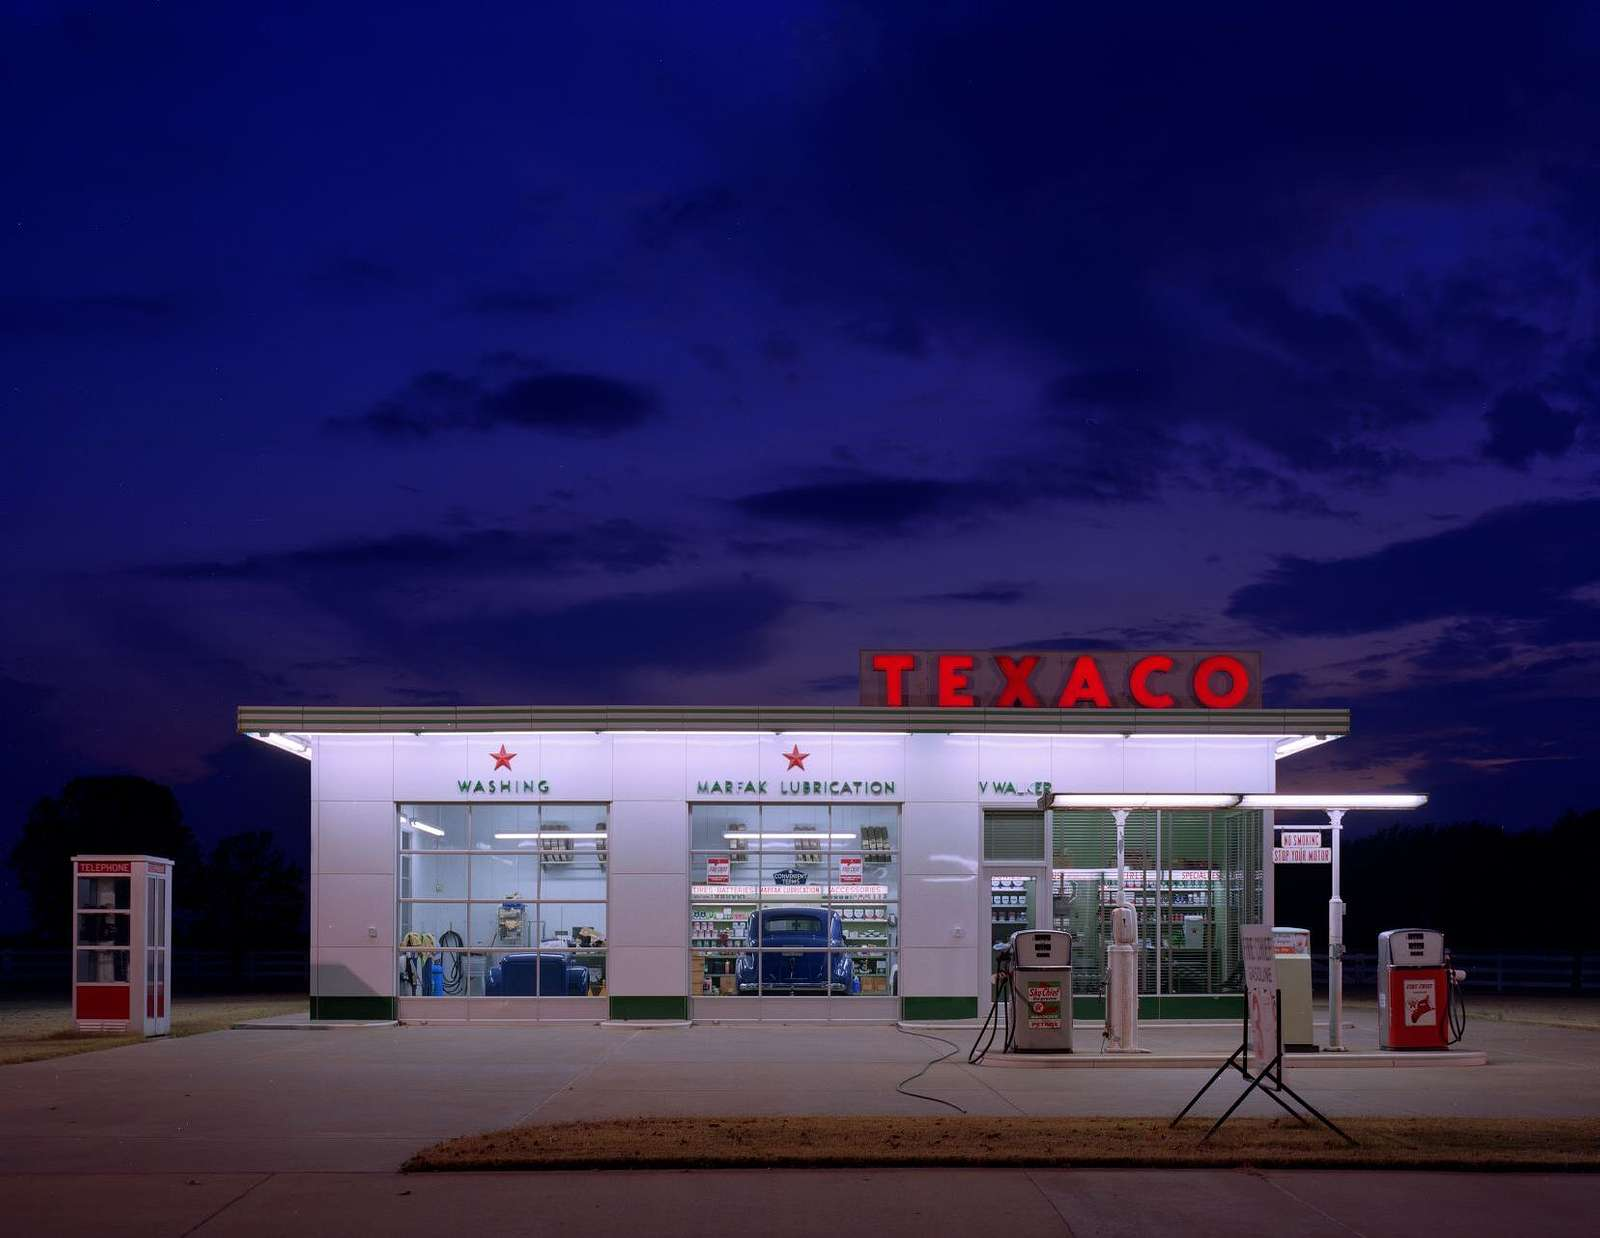 A completely reassembled vintage Texaco Station on the property of Vernon Walker who is a collector of old signs in Arkansas, near Memphis, Tennessee